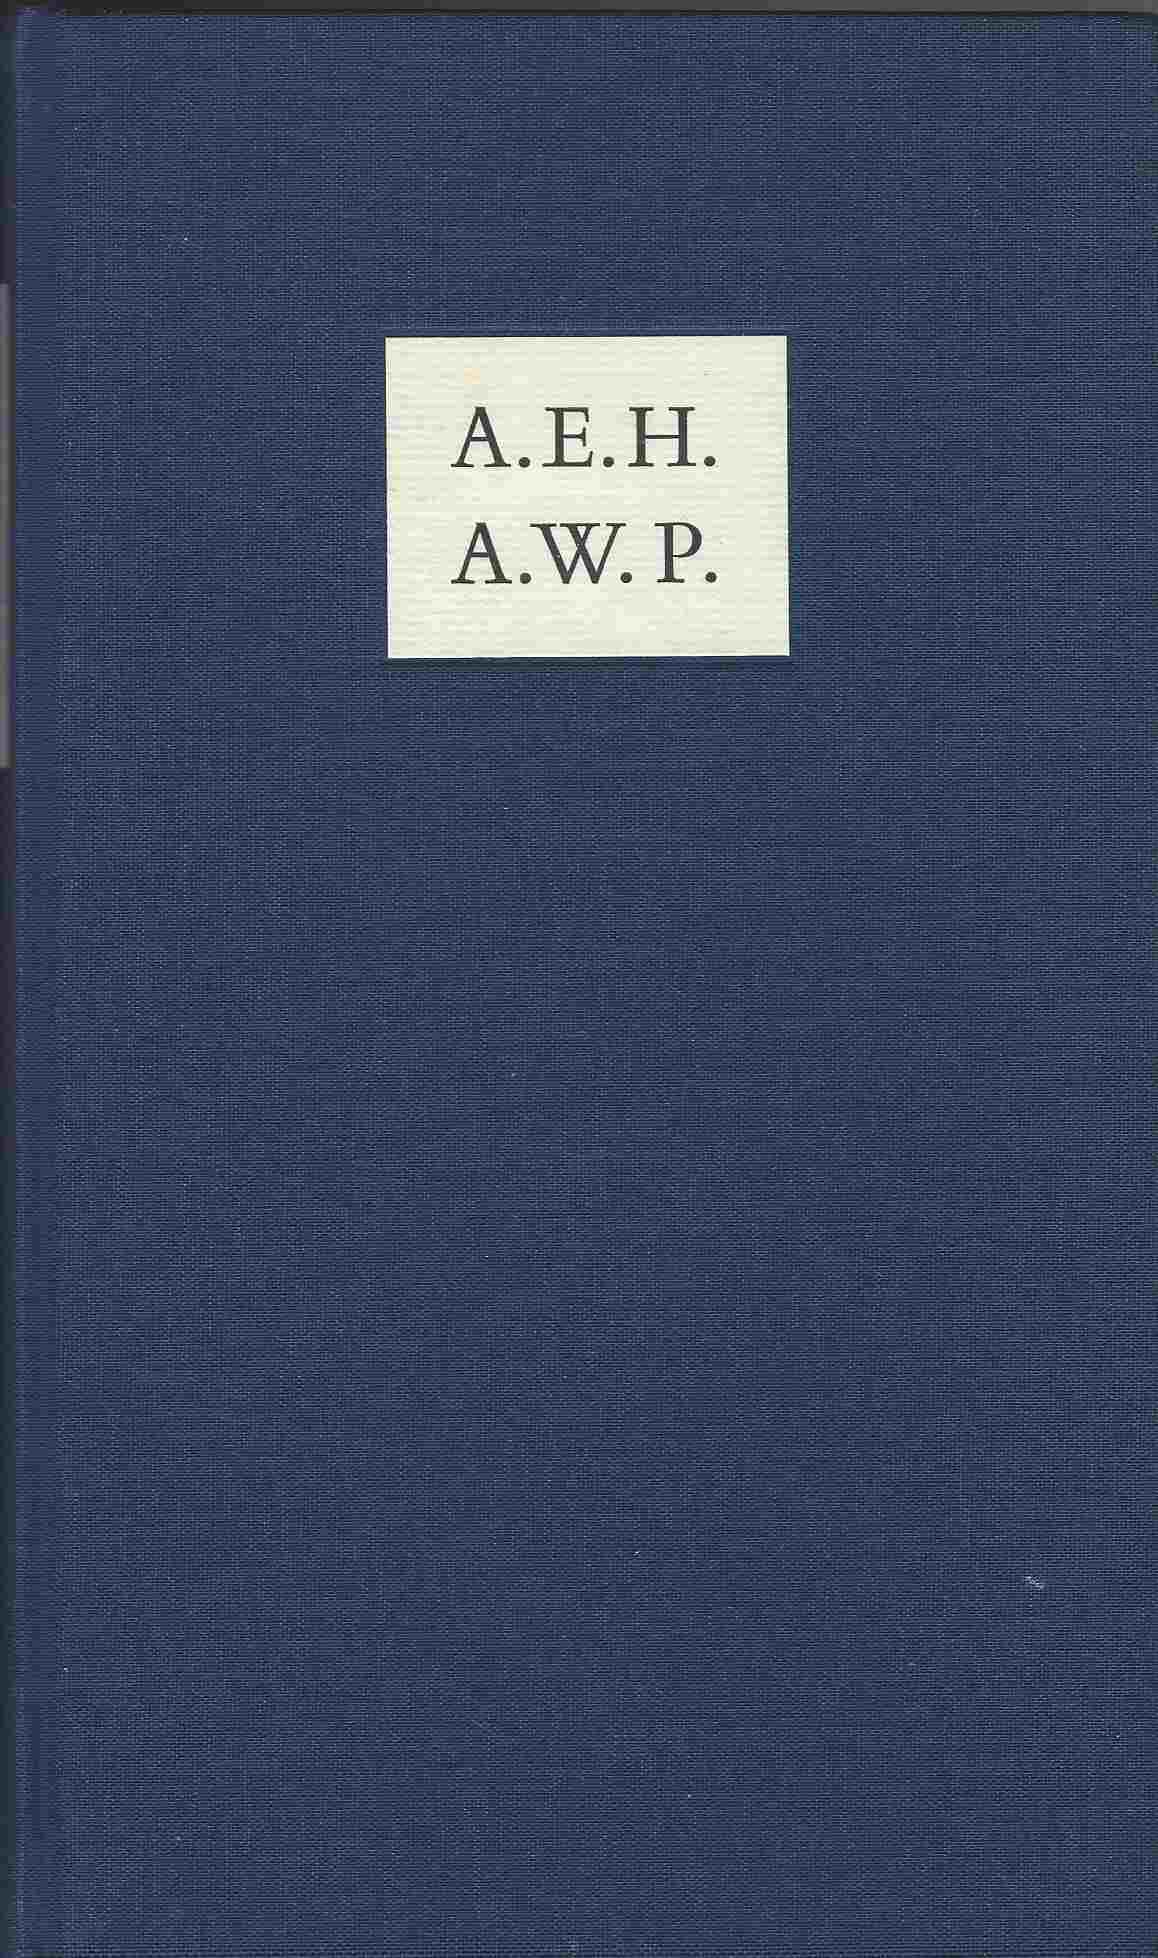 Image for AEH / AWP  A Classical Friendship - A. E. Housman and A. W. Pollard